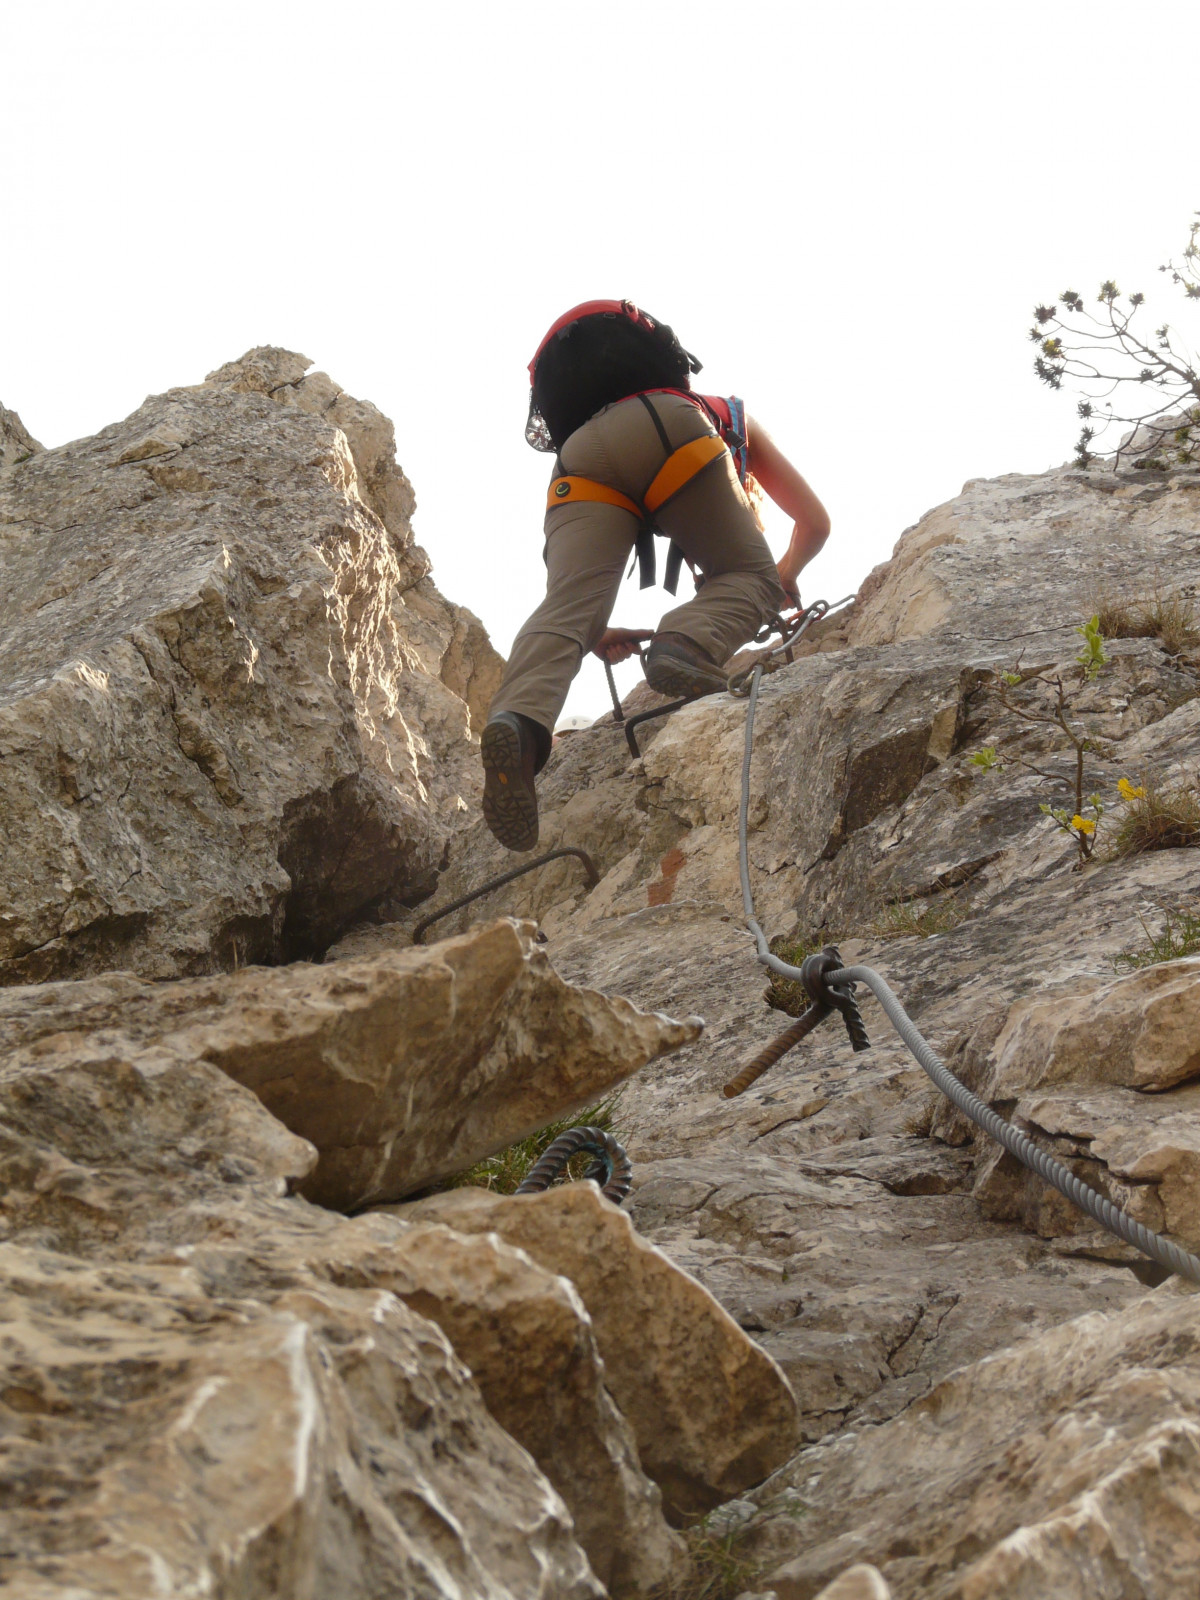 Free Images  mountain hiking adventure italy rock climbing climber scale extreme sport